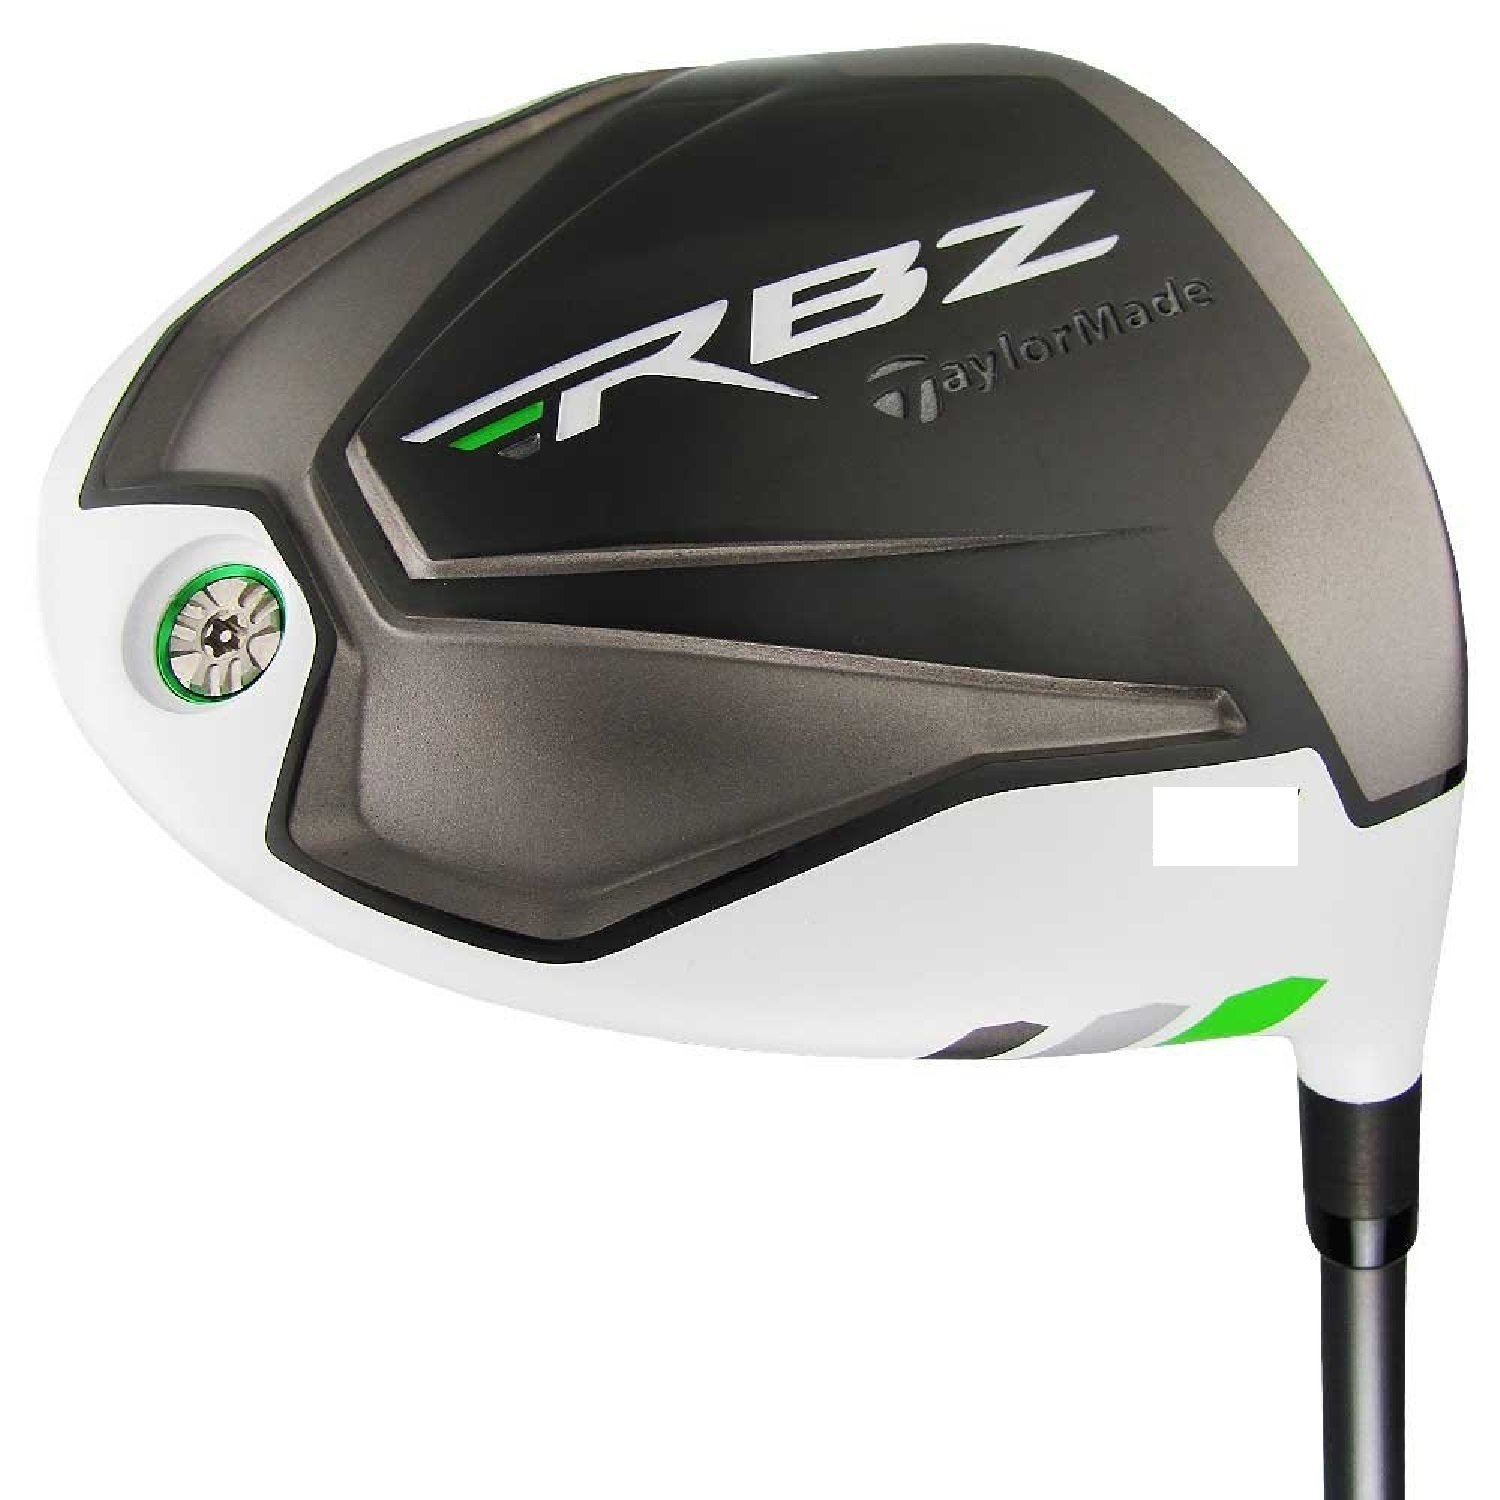 Mens Taylormade RBZ Bonded Hosel Golf Drivers